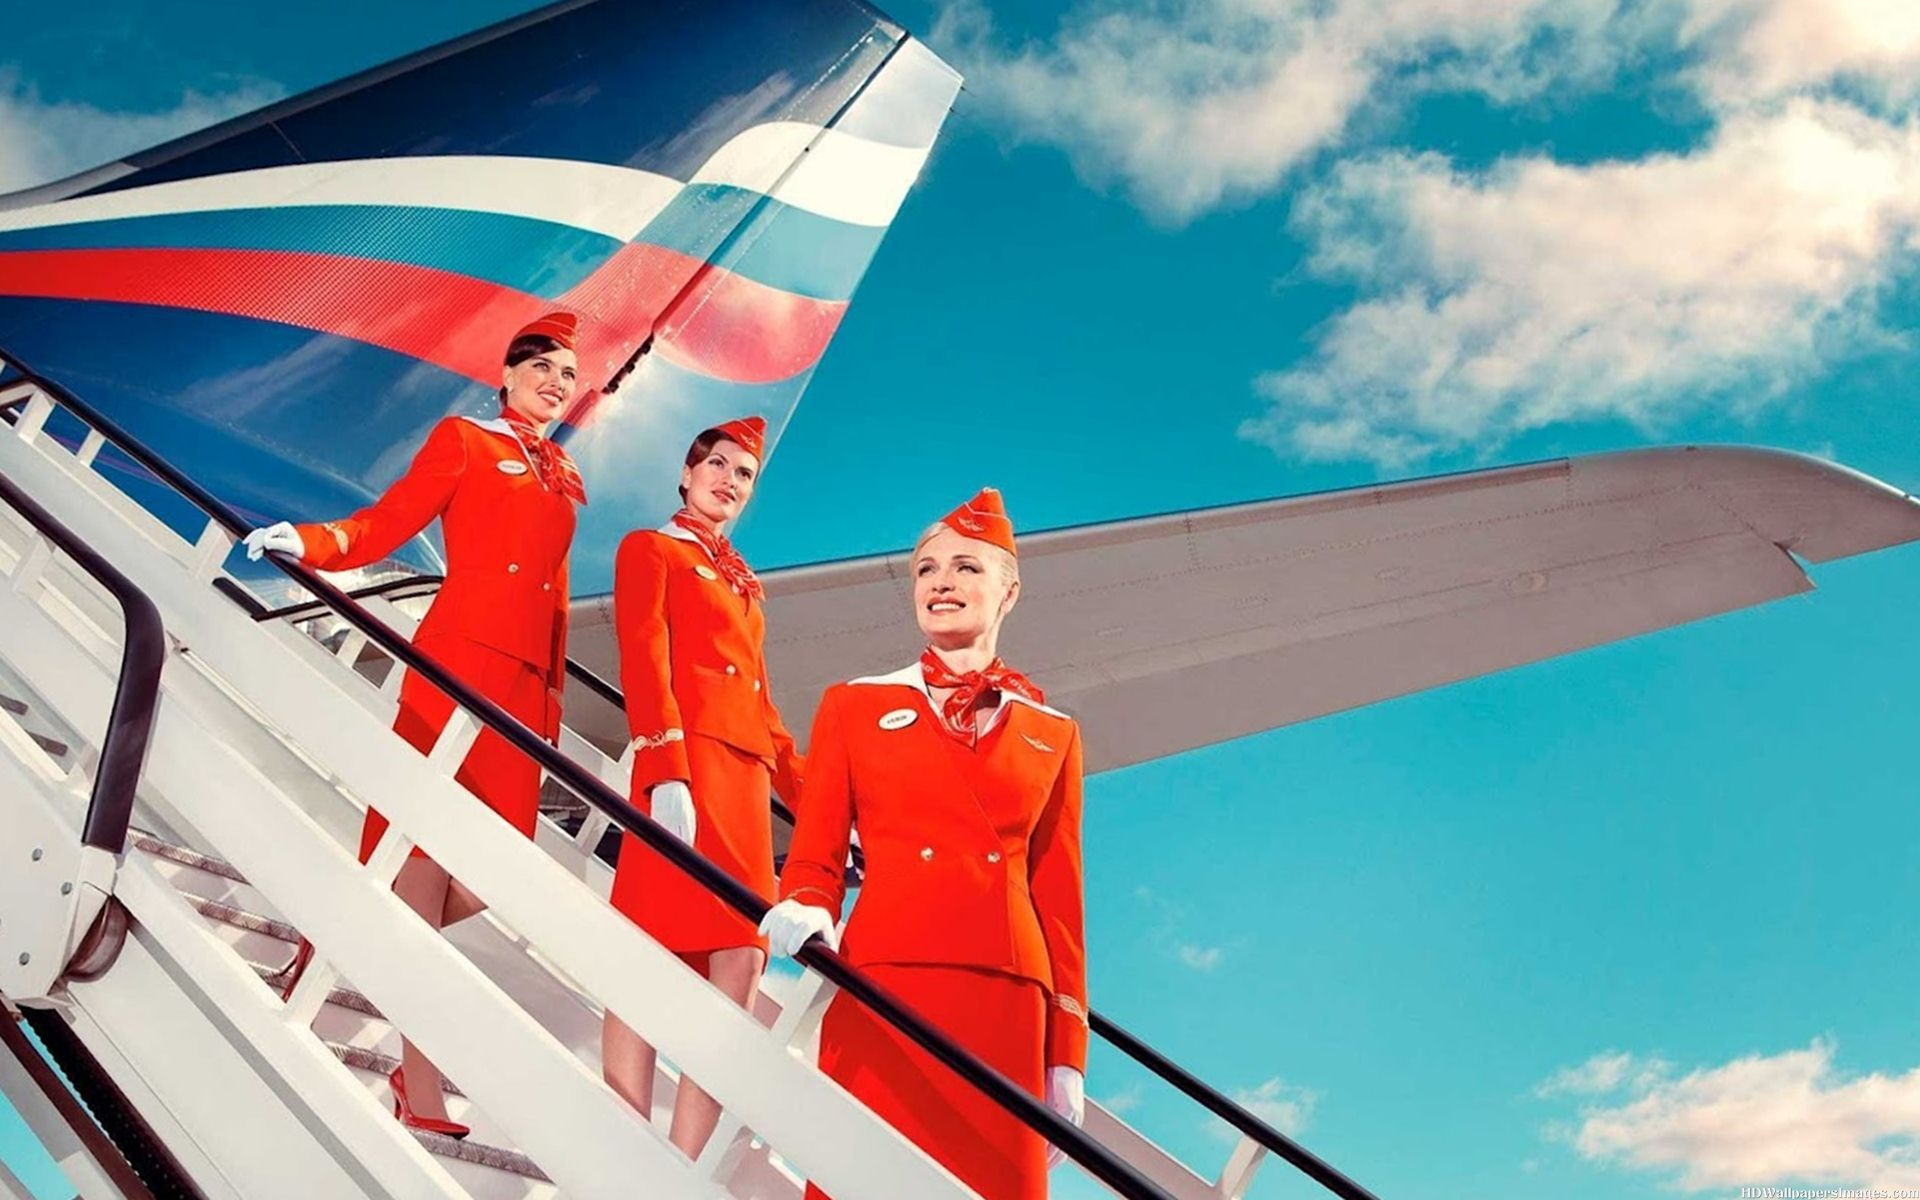 i want to become an airhostess I would like to know if part time work is available if i wanted to become an air hostess what do i have to do i really want to work at the airport or airline work.